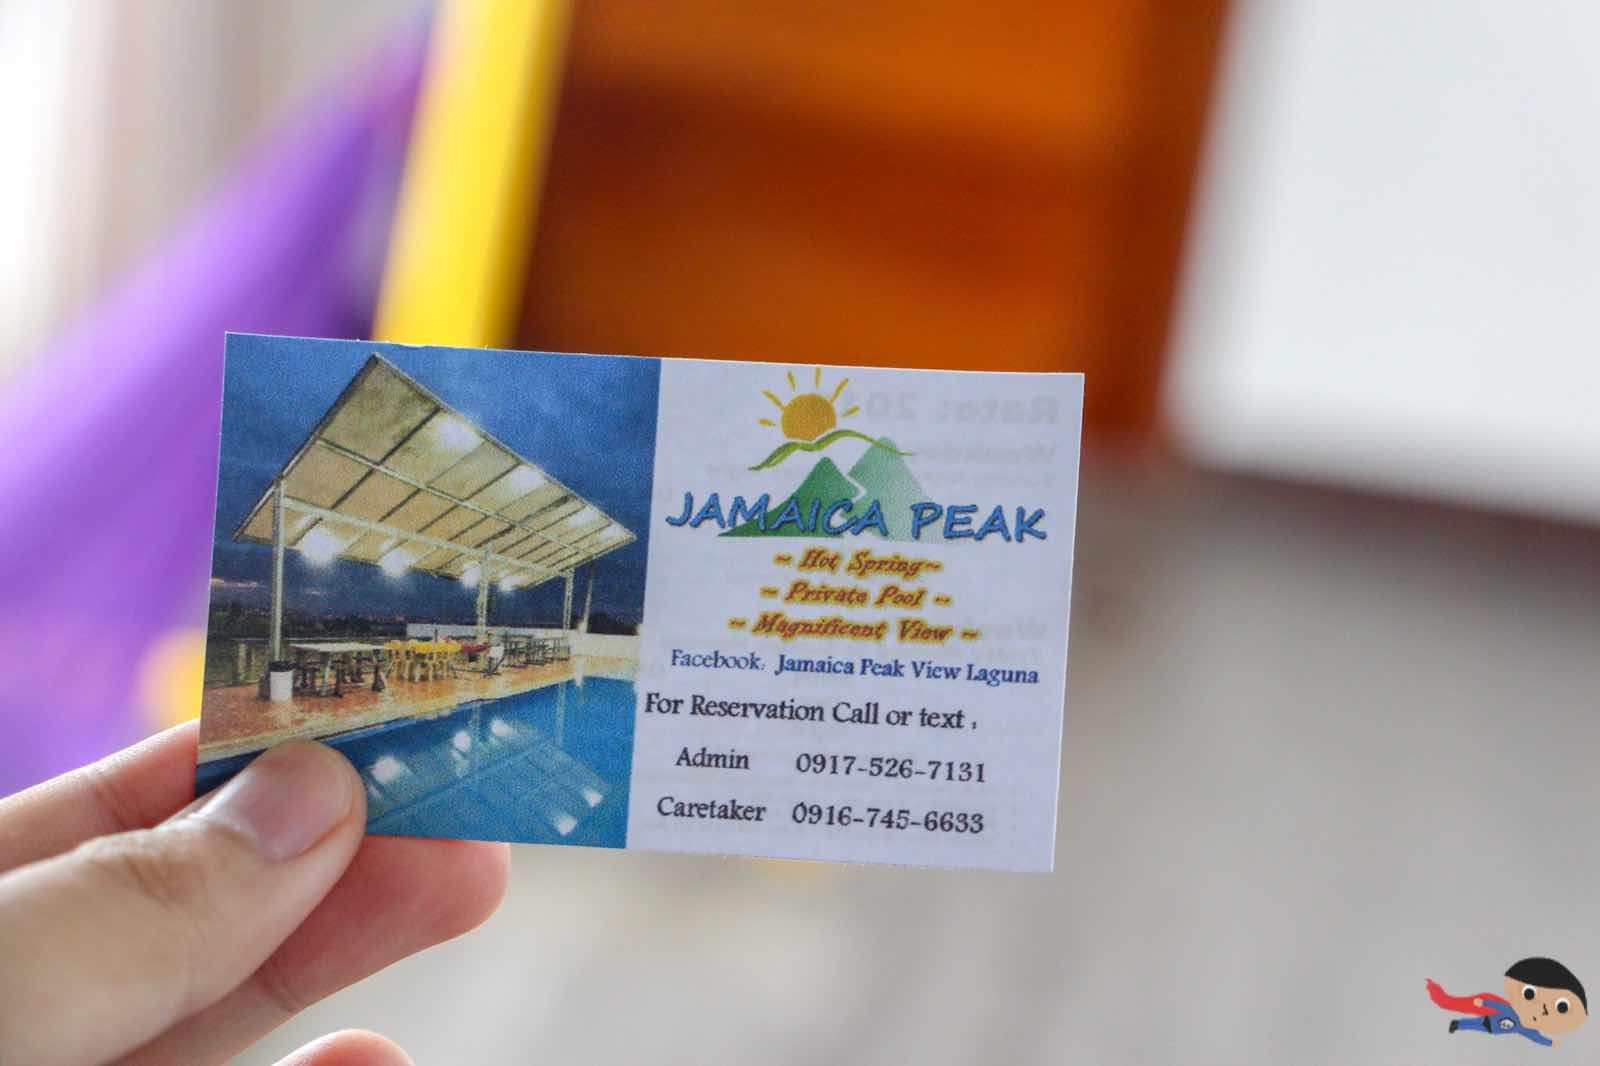 Contact Card of Jamaica Peak Resort - Laguna